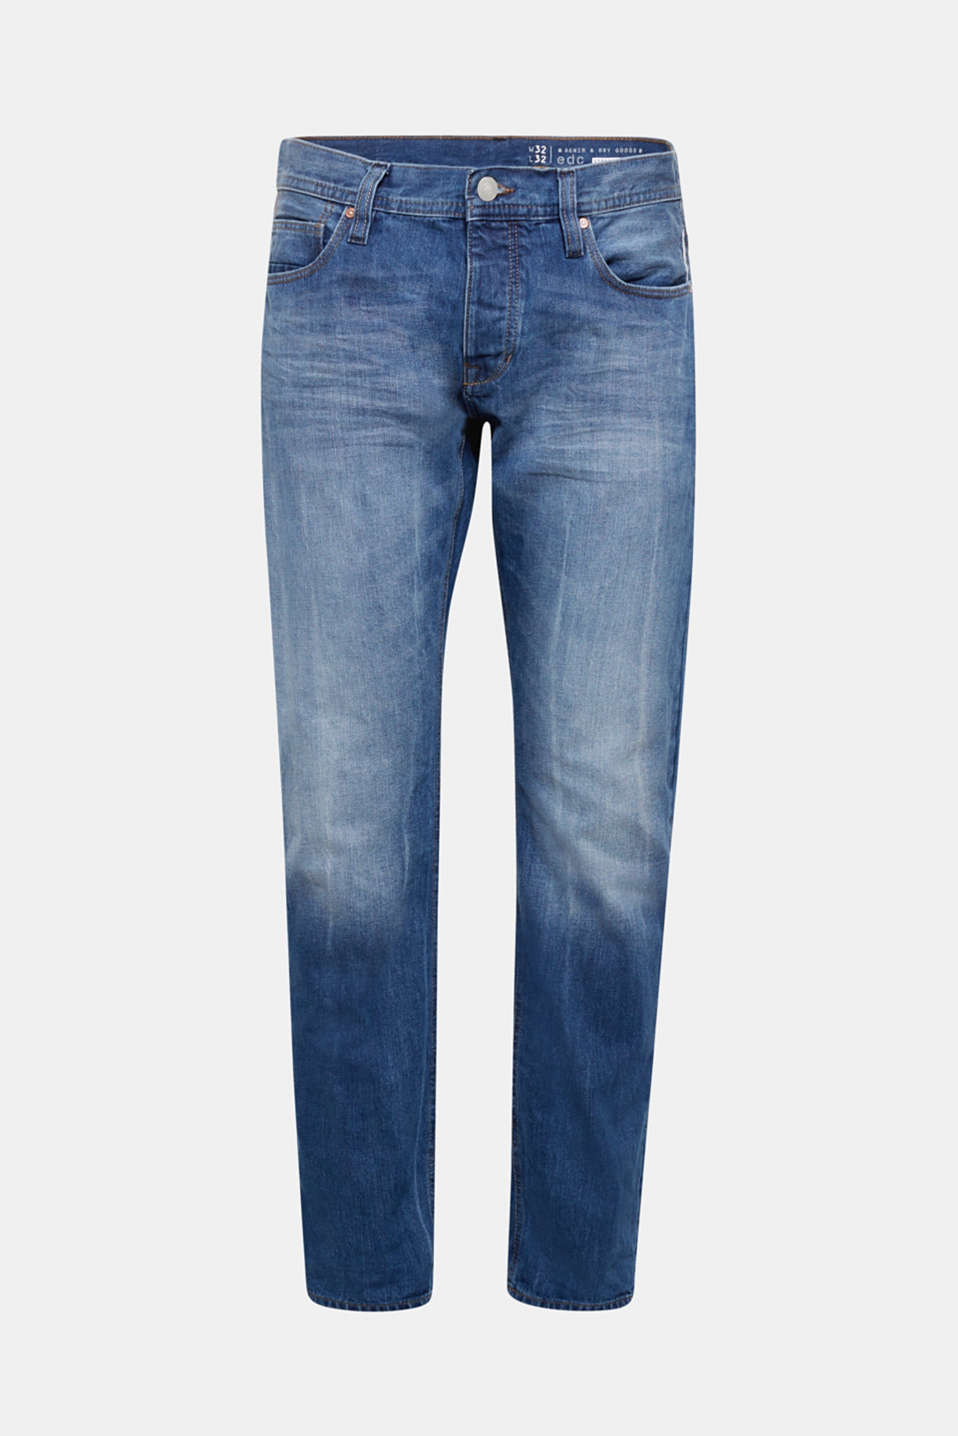 edc - Jeans mit Used-Waschung, 100% Baumwolle